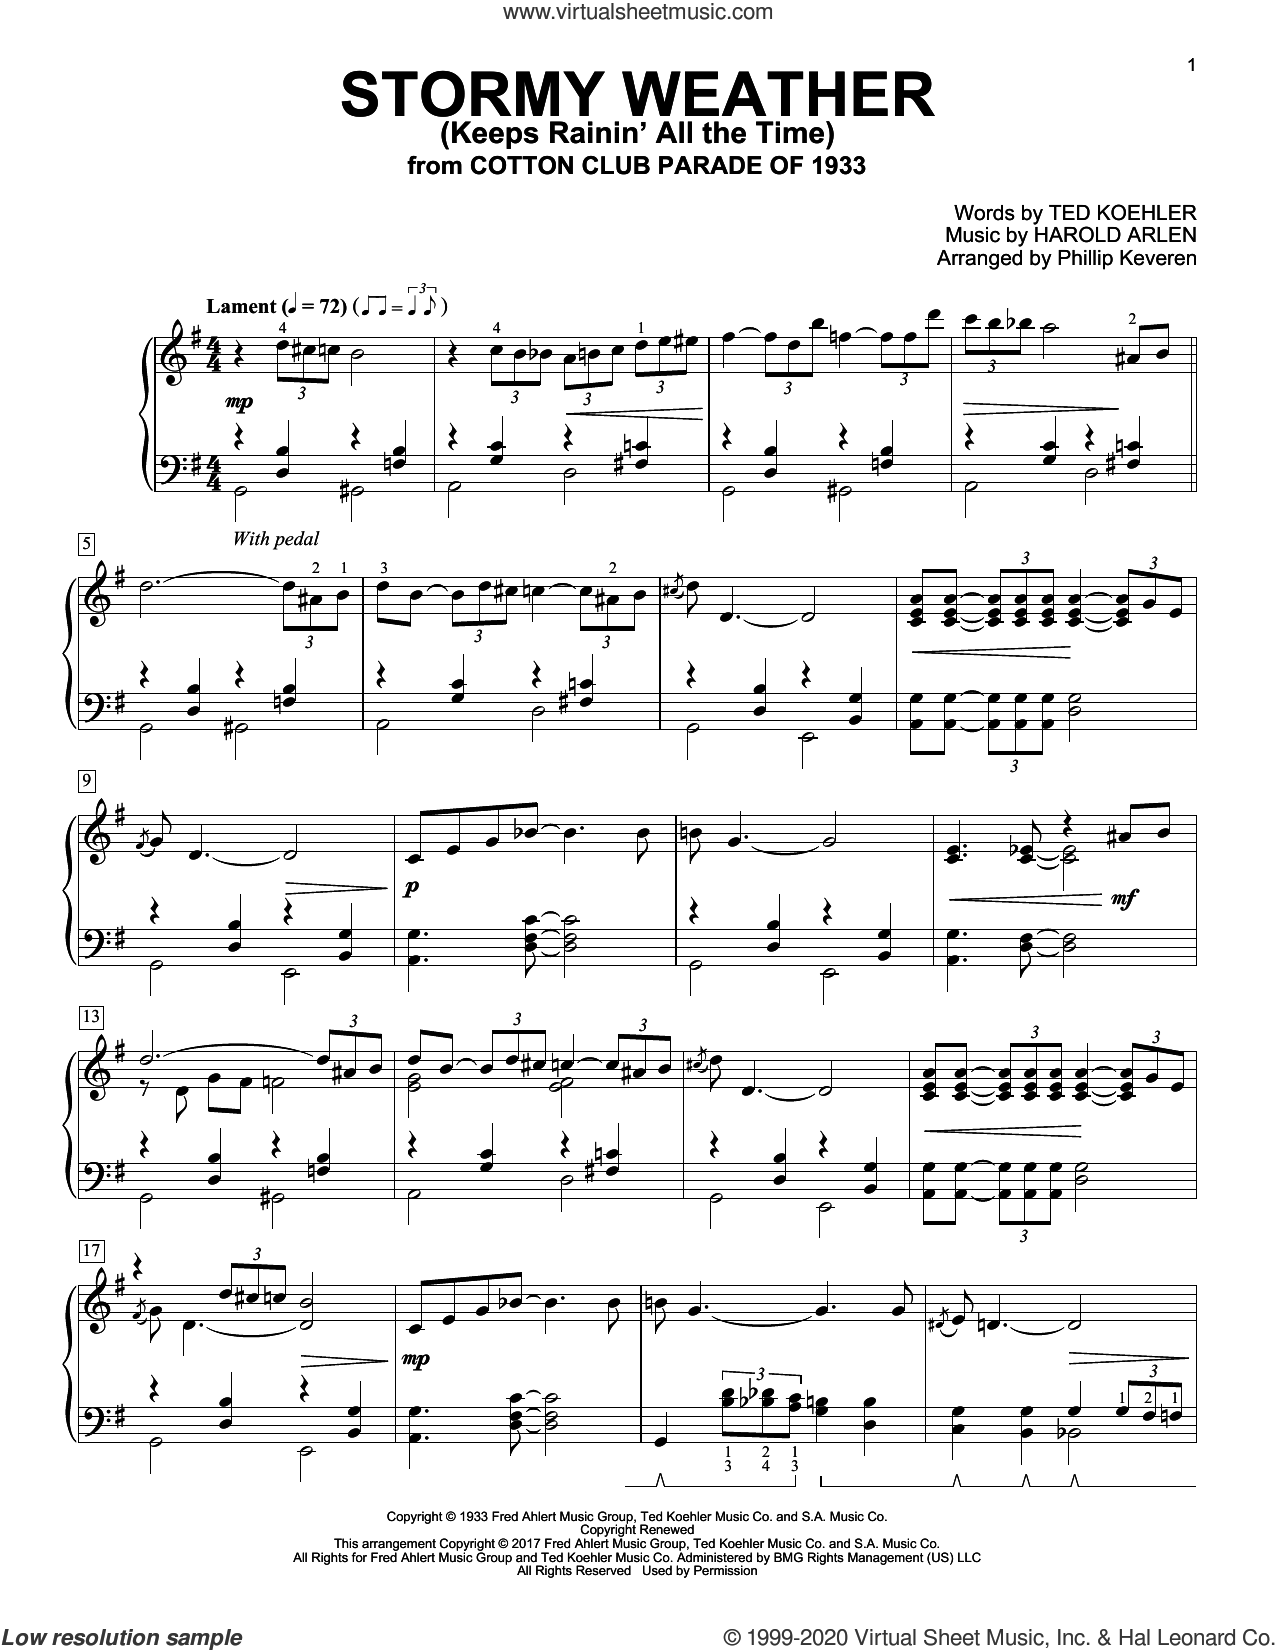 Stormy Weather (Keeps Rainin' All The Time) sheet music for piano solo by Harold Arlen, Phillip Keveren and Ted Koehler, intermediate skill level